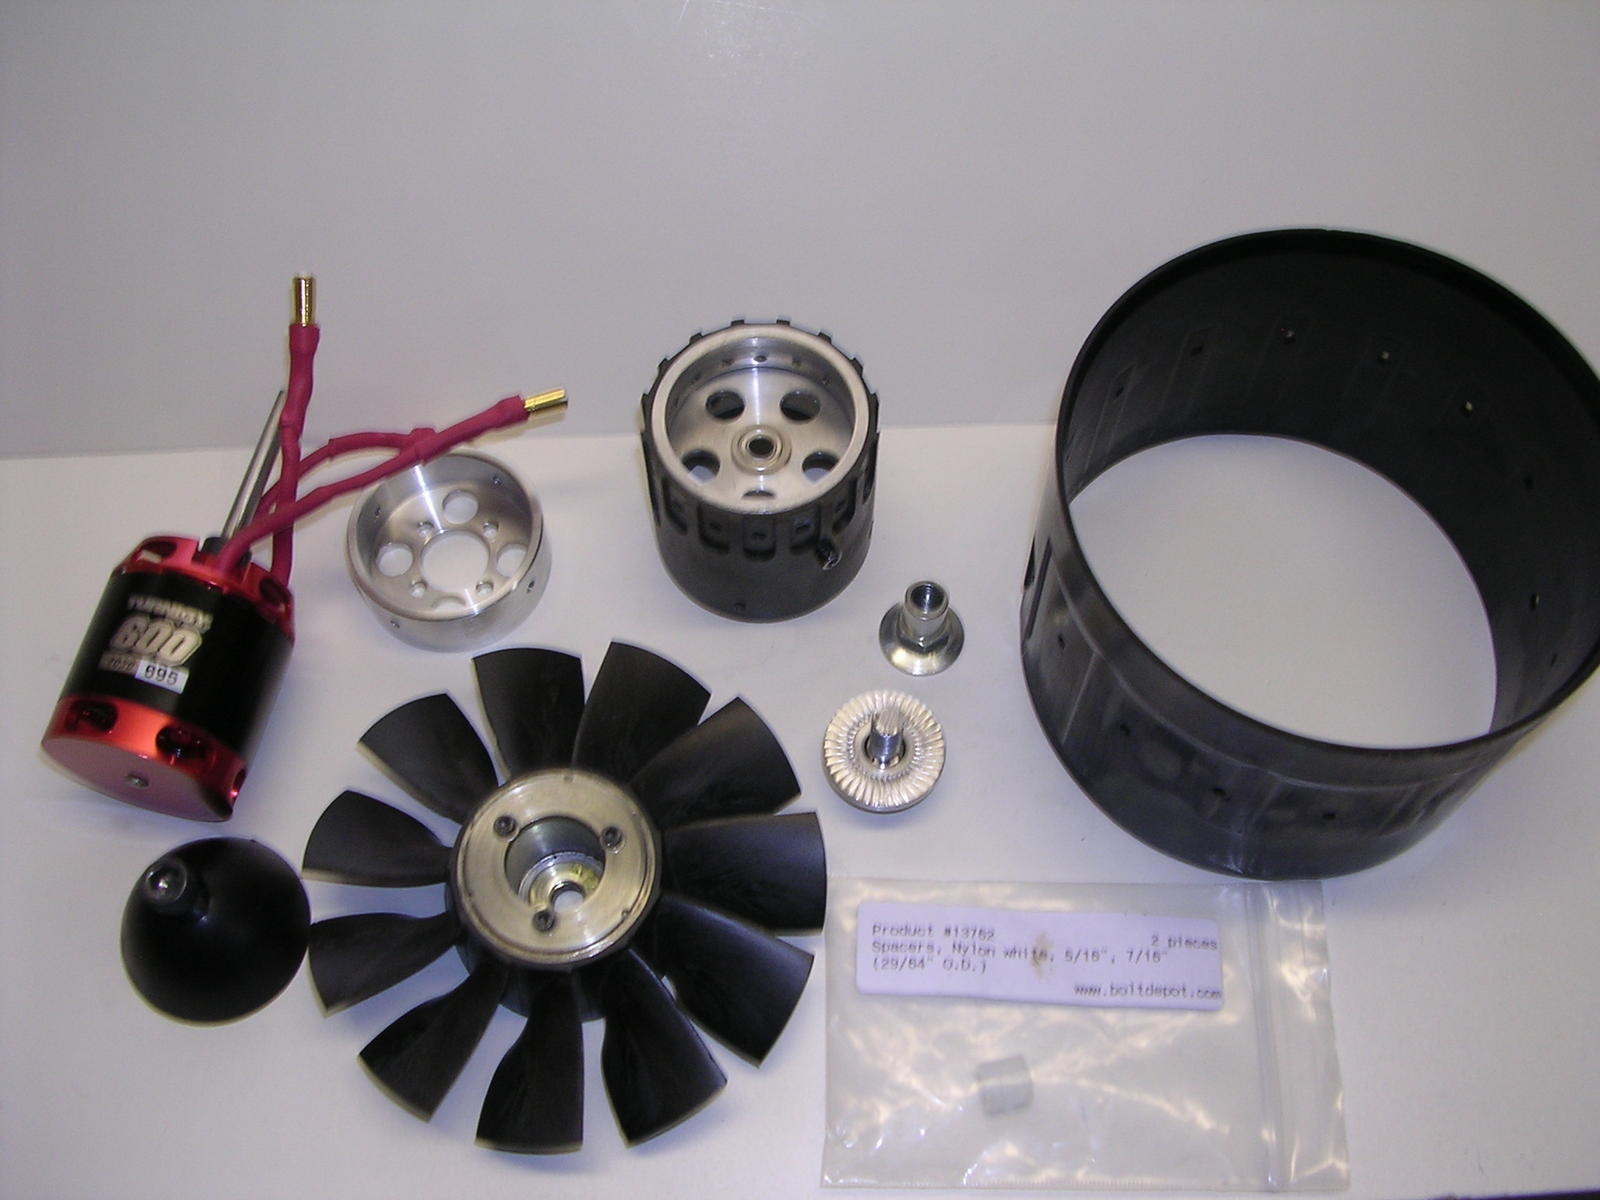 All the goodies. Plastic bag contains special order nylon bushing for fan hub. Zero play in fan/adapter mating.